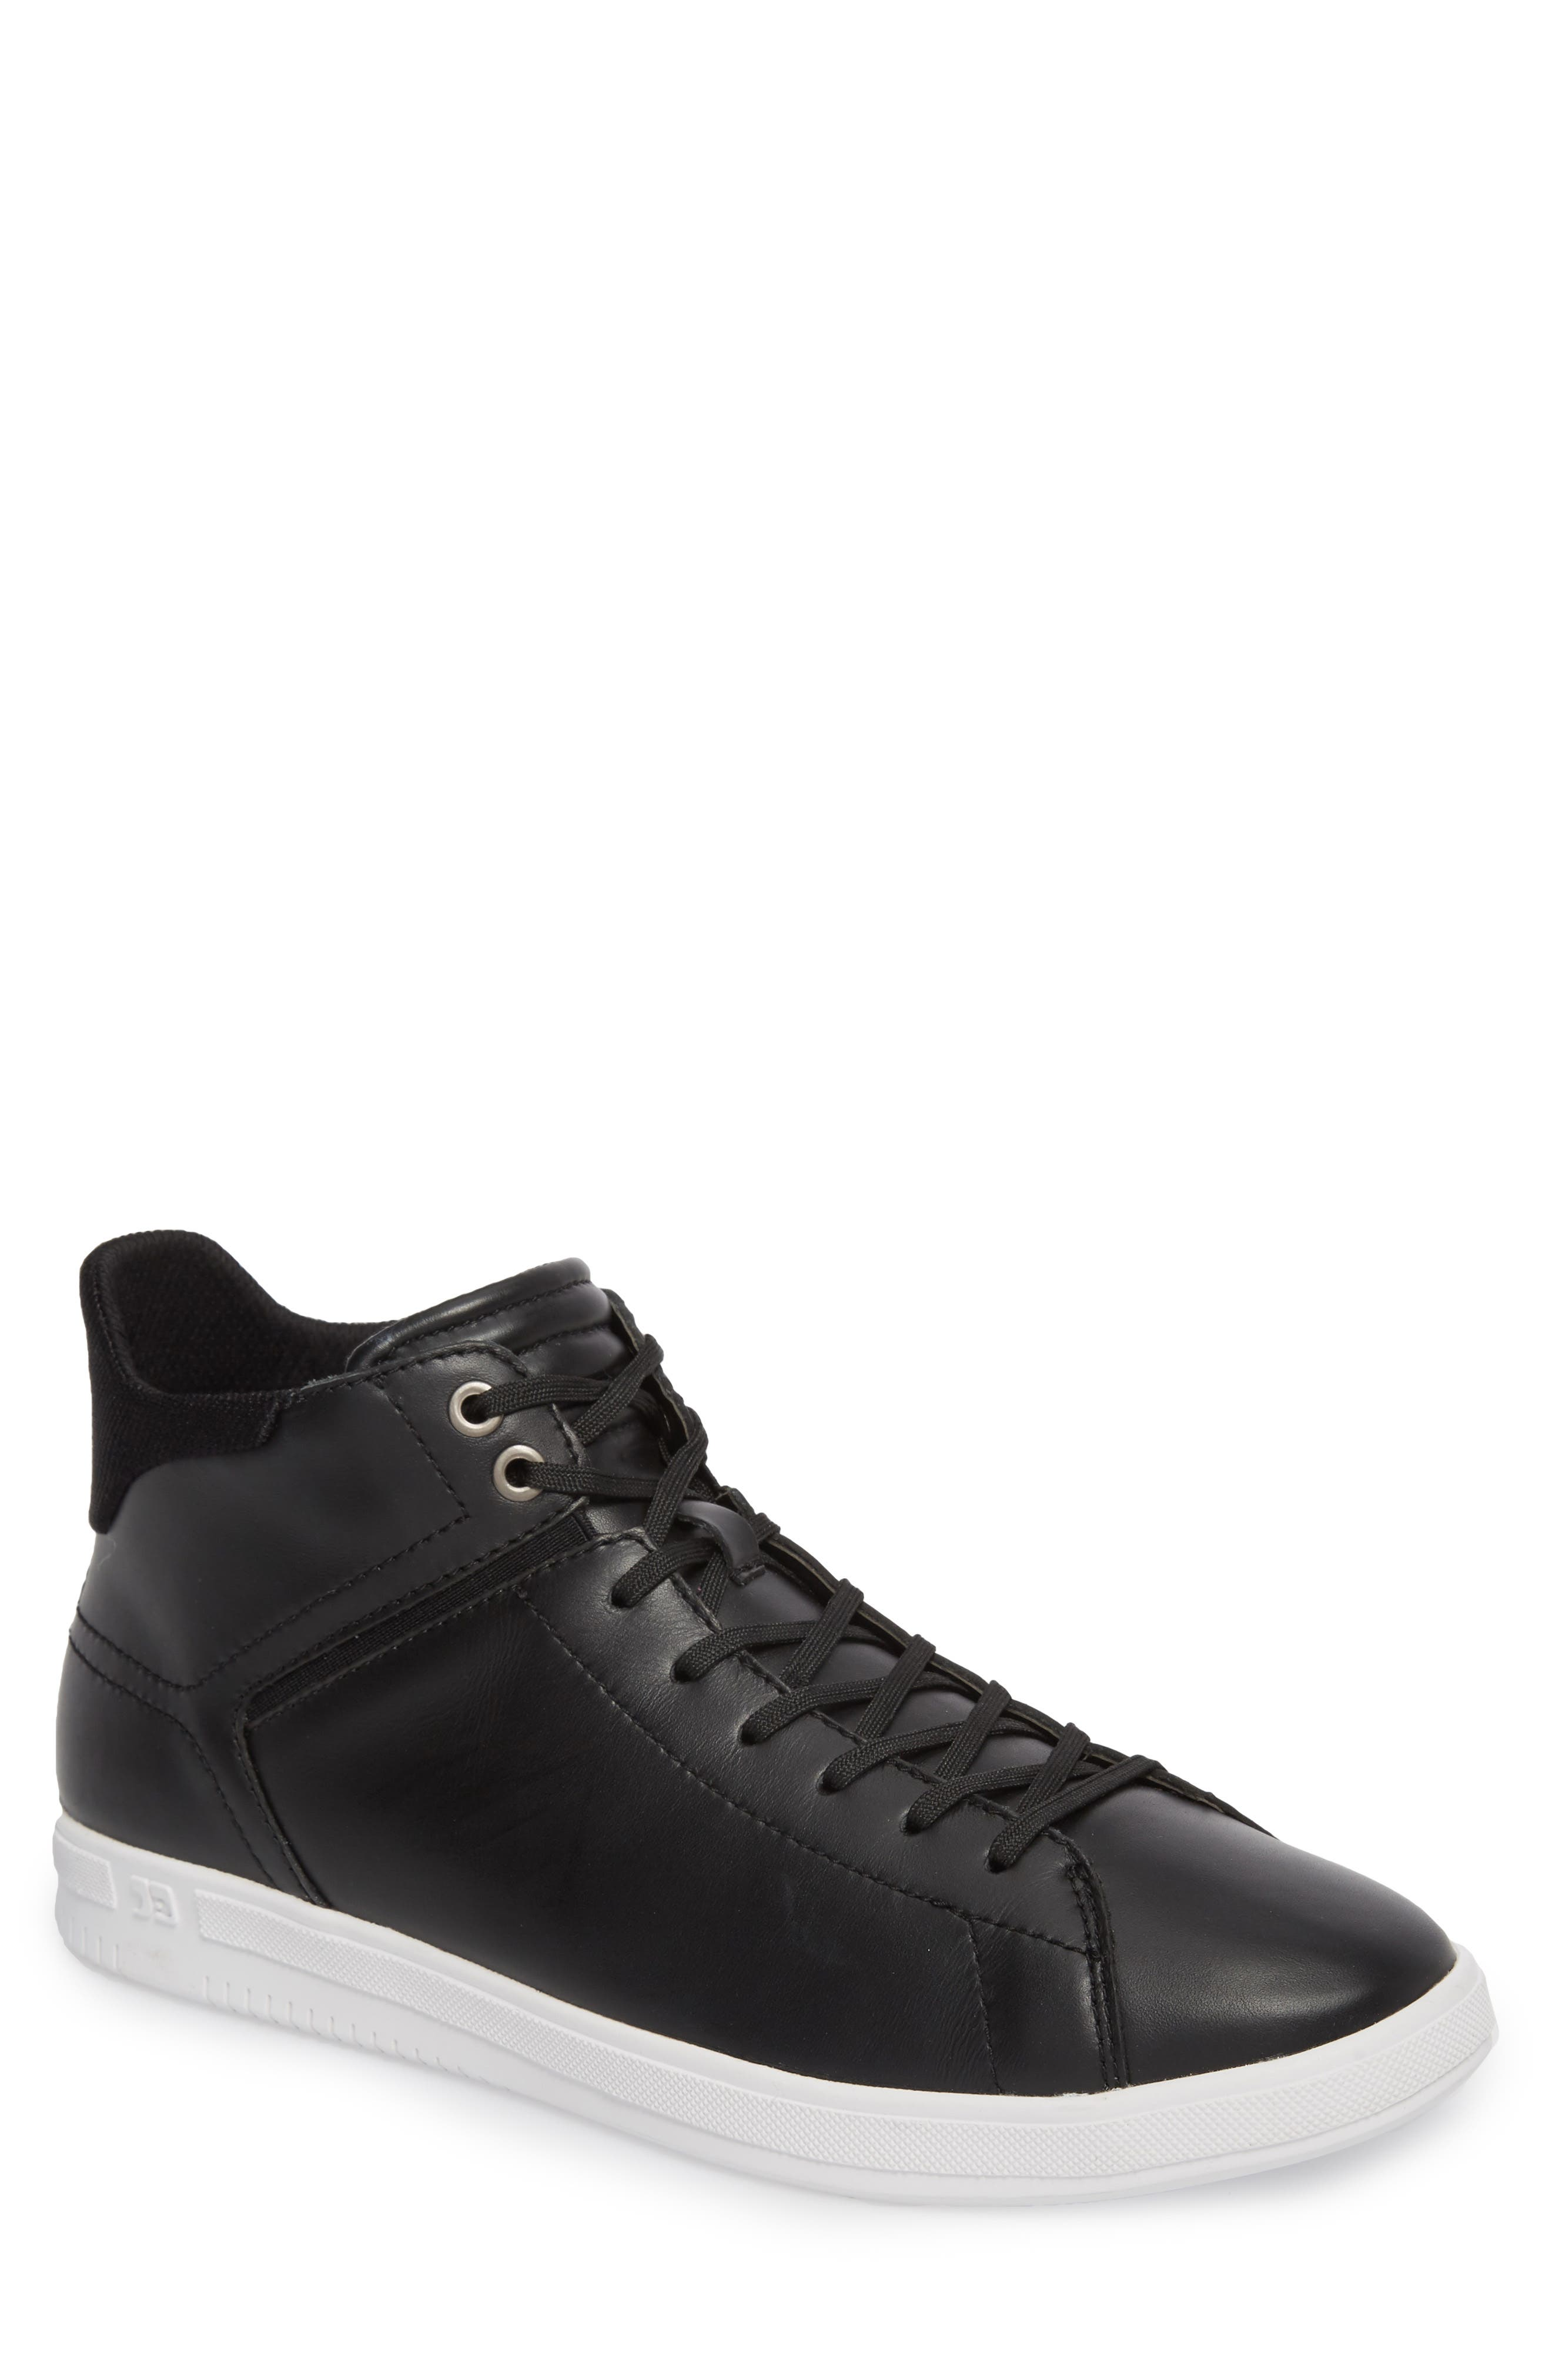 Joe Z Mid Top Sneaker,                         Main,                         color,